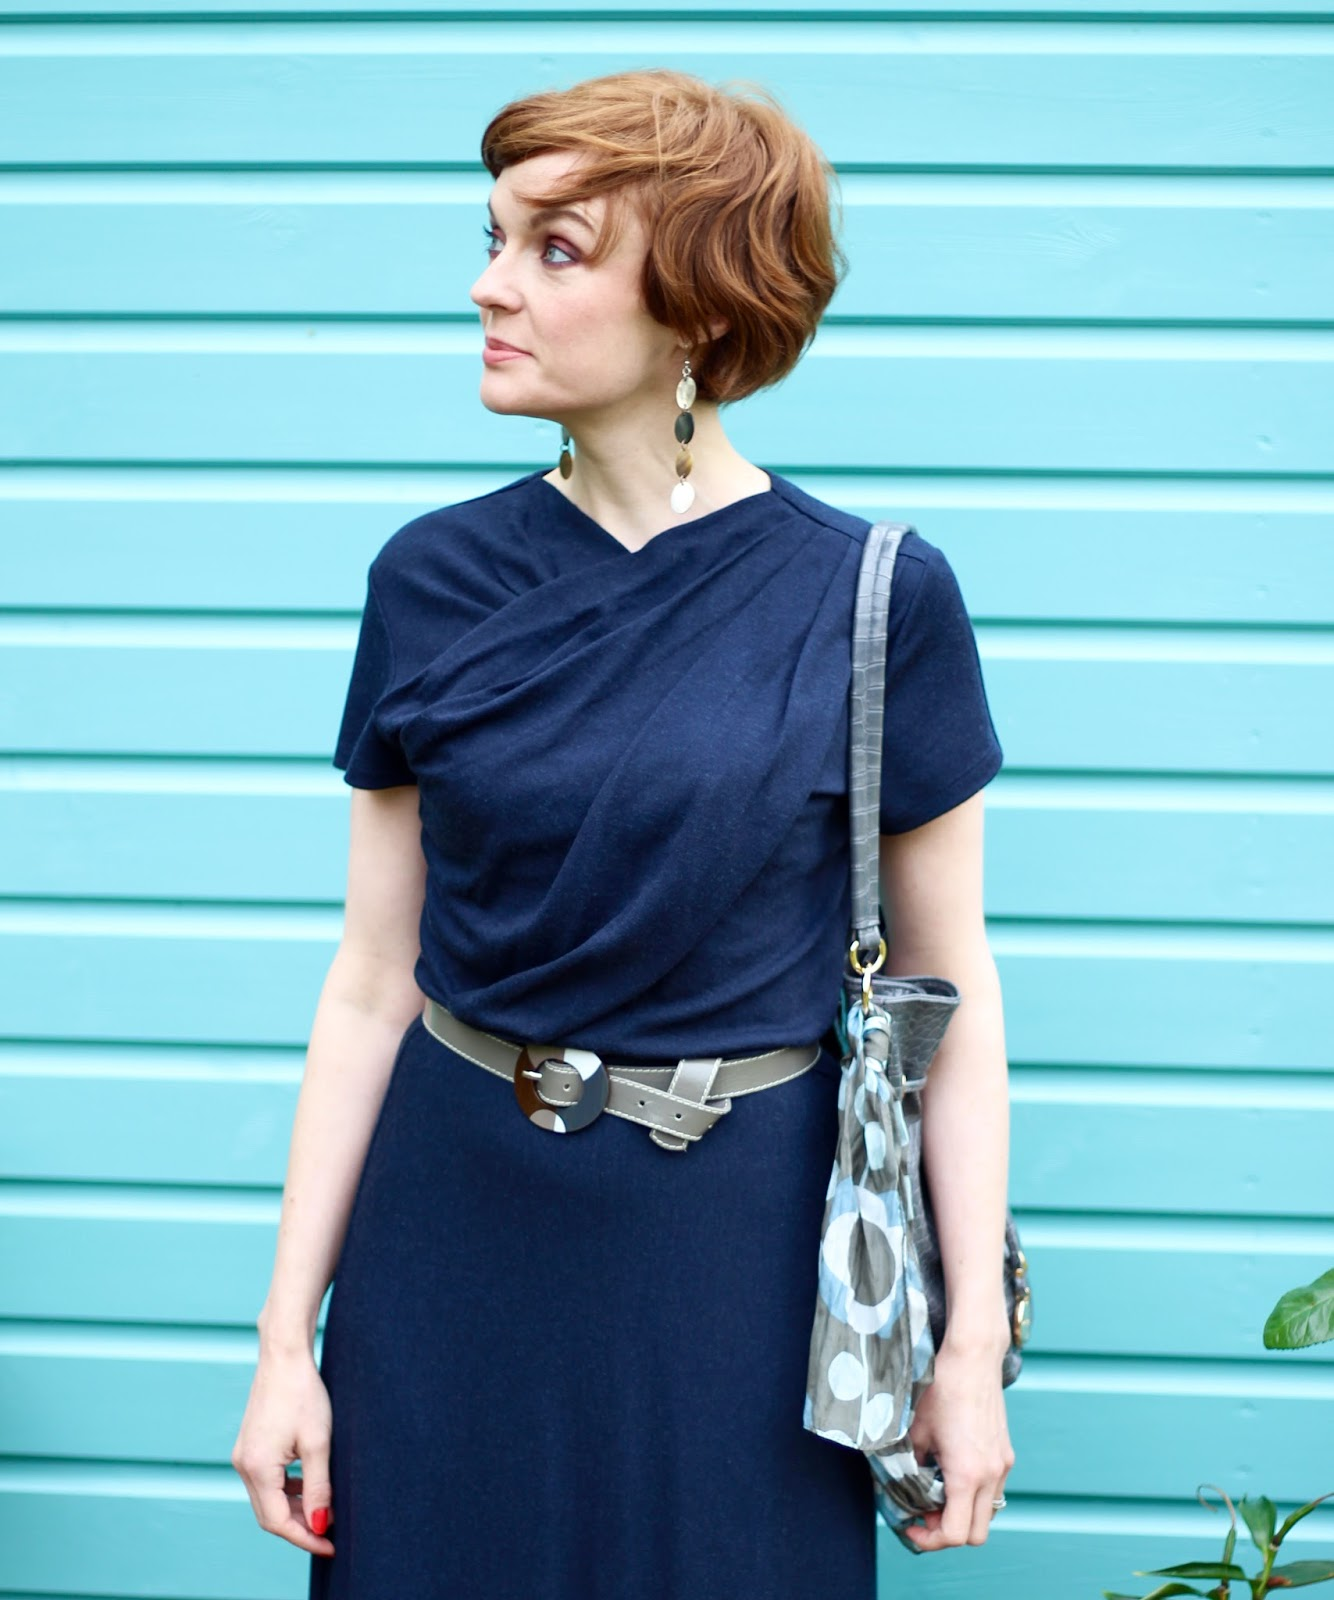 Fake Fabulous | Navy Finery Midi-dress, grey and taupe accessories & Chunky Vagabond sandals.